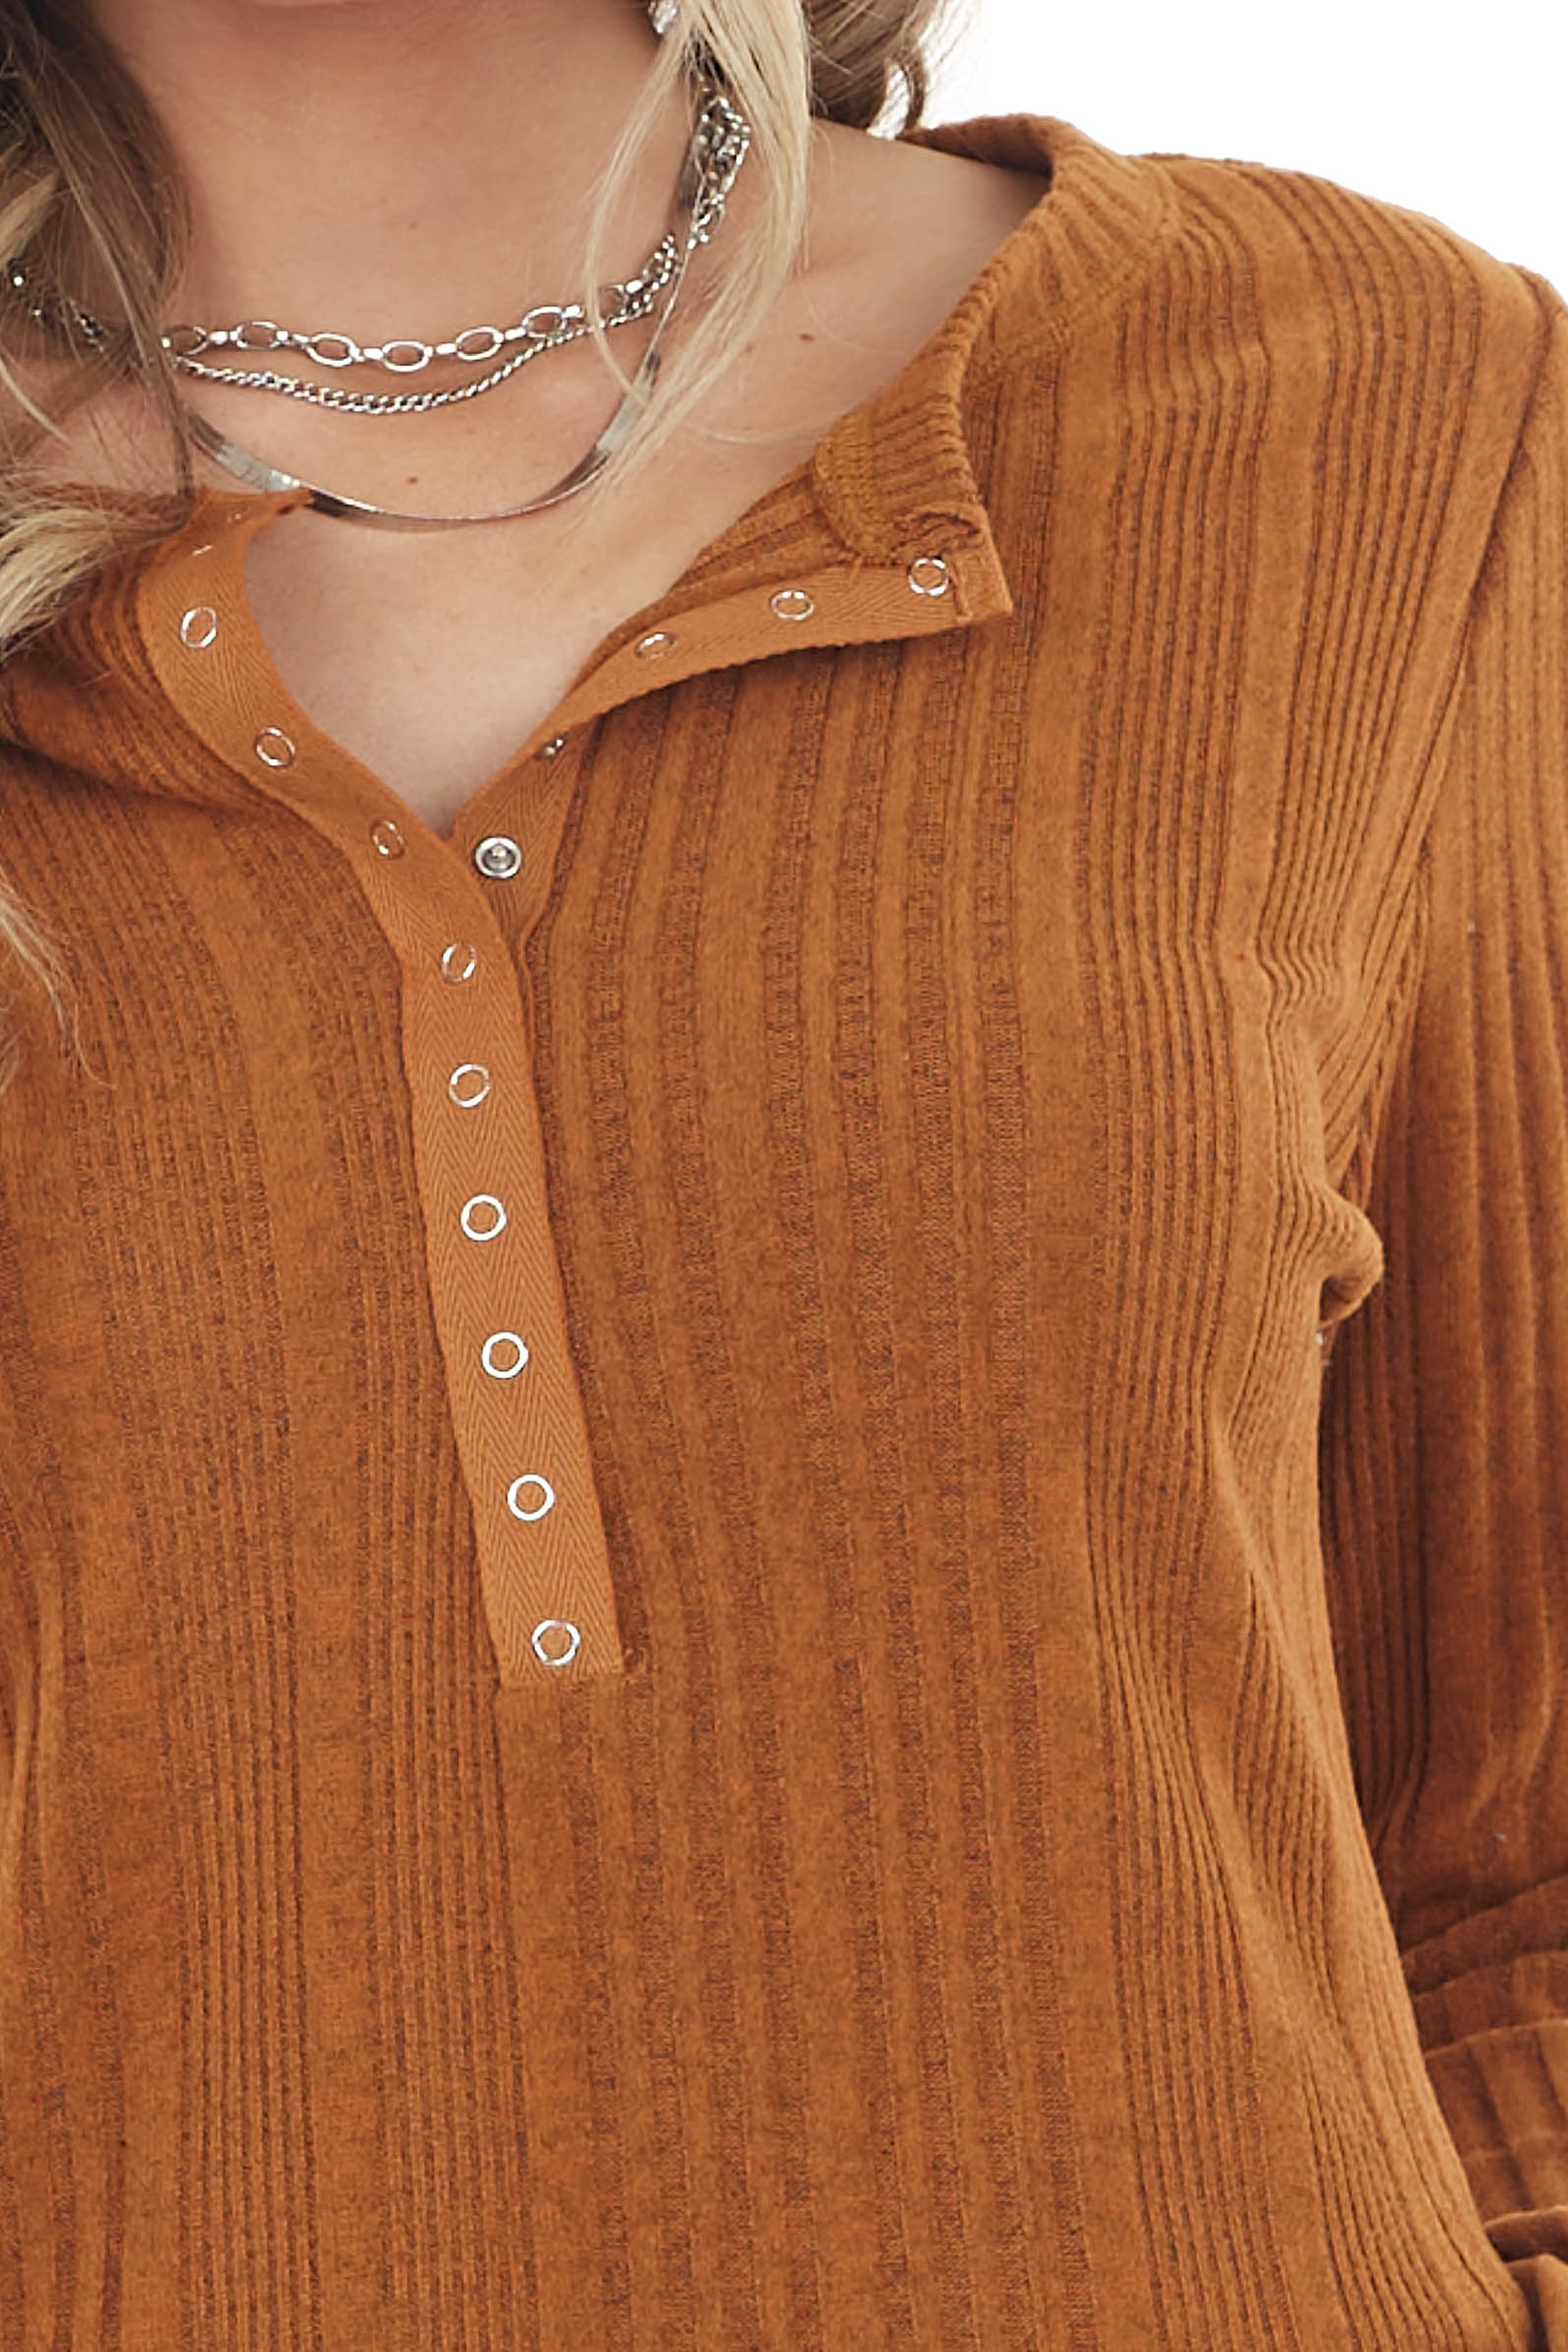 Pumpkin Spice Ribbed Textured Top with Snap Closure Buttons